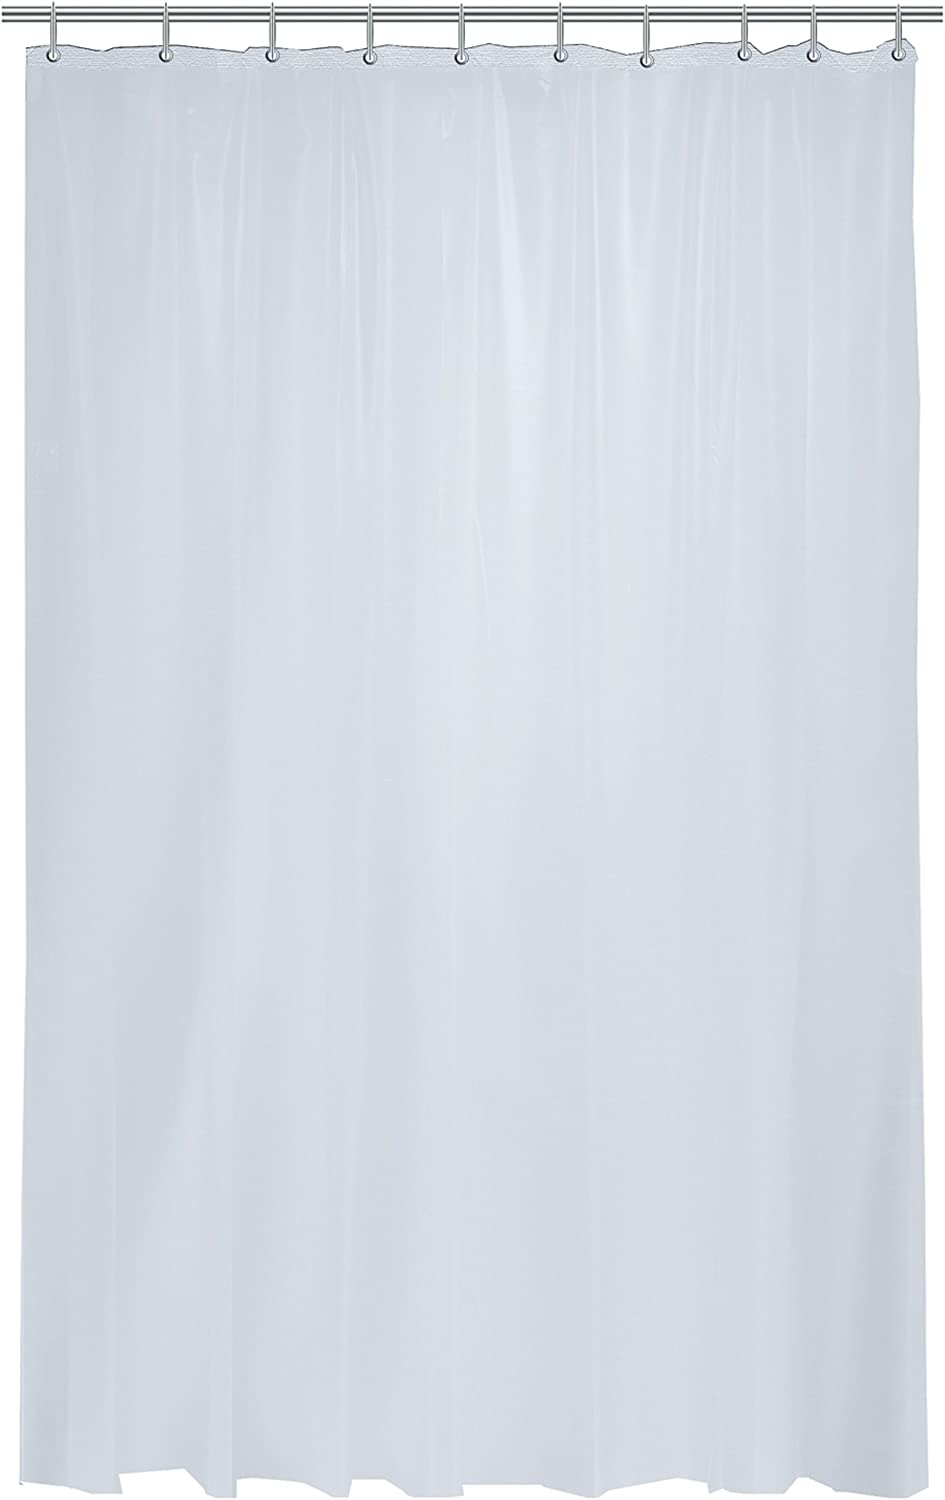 EXCELL Home Fashions Watergard Heavy Weight Vinyl Shower Curtain Liner, Water-Resistant Shower Curtain Liner, Frosty